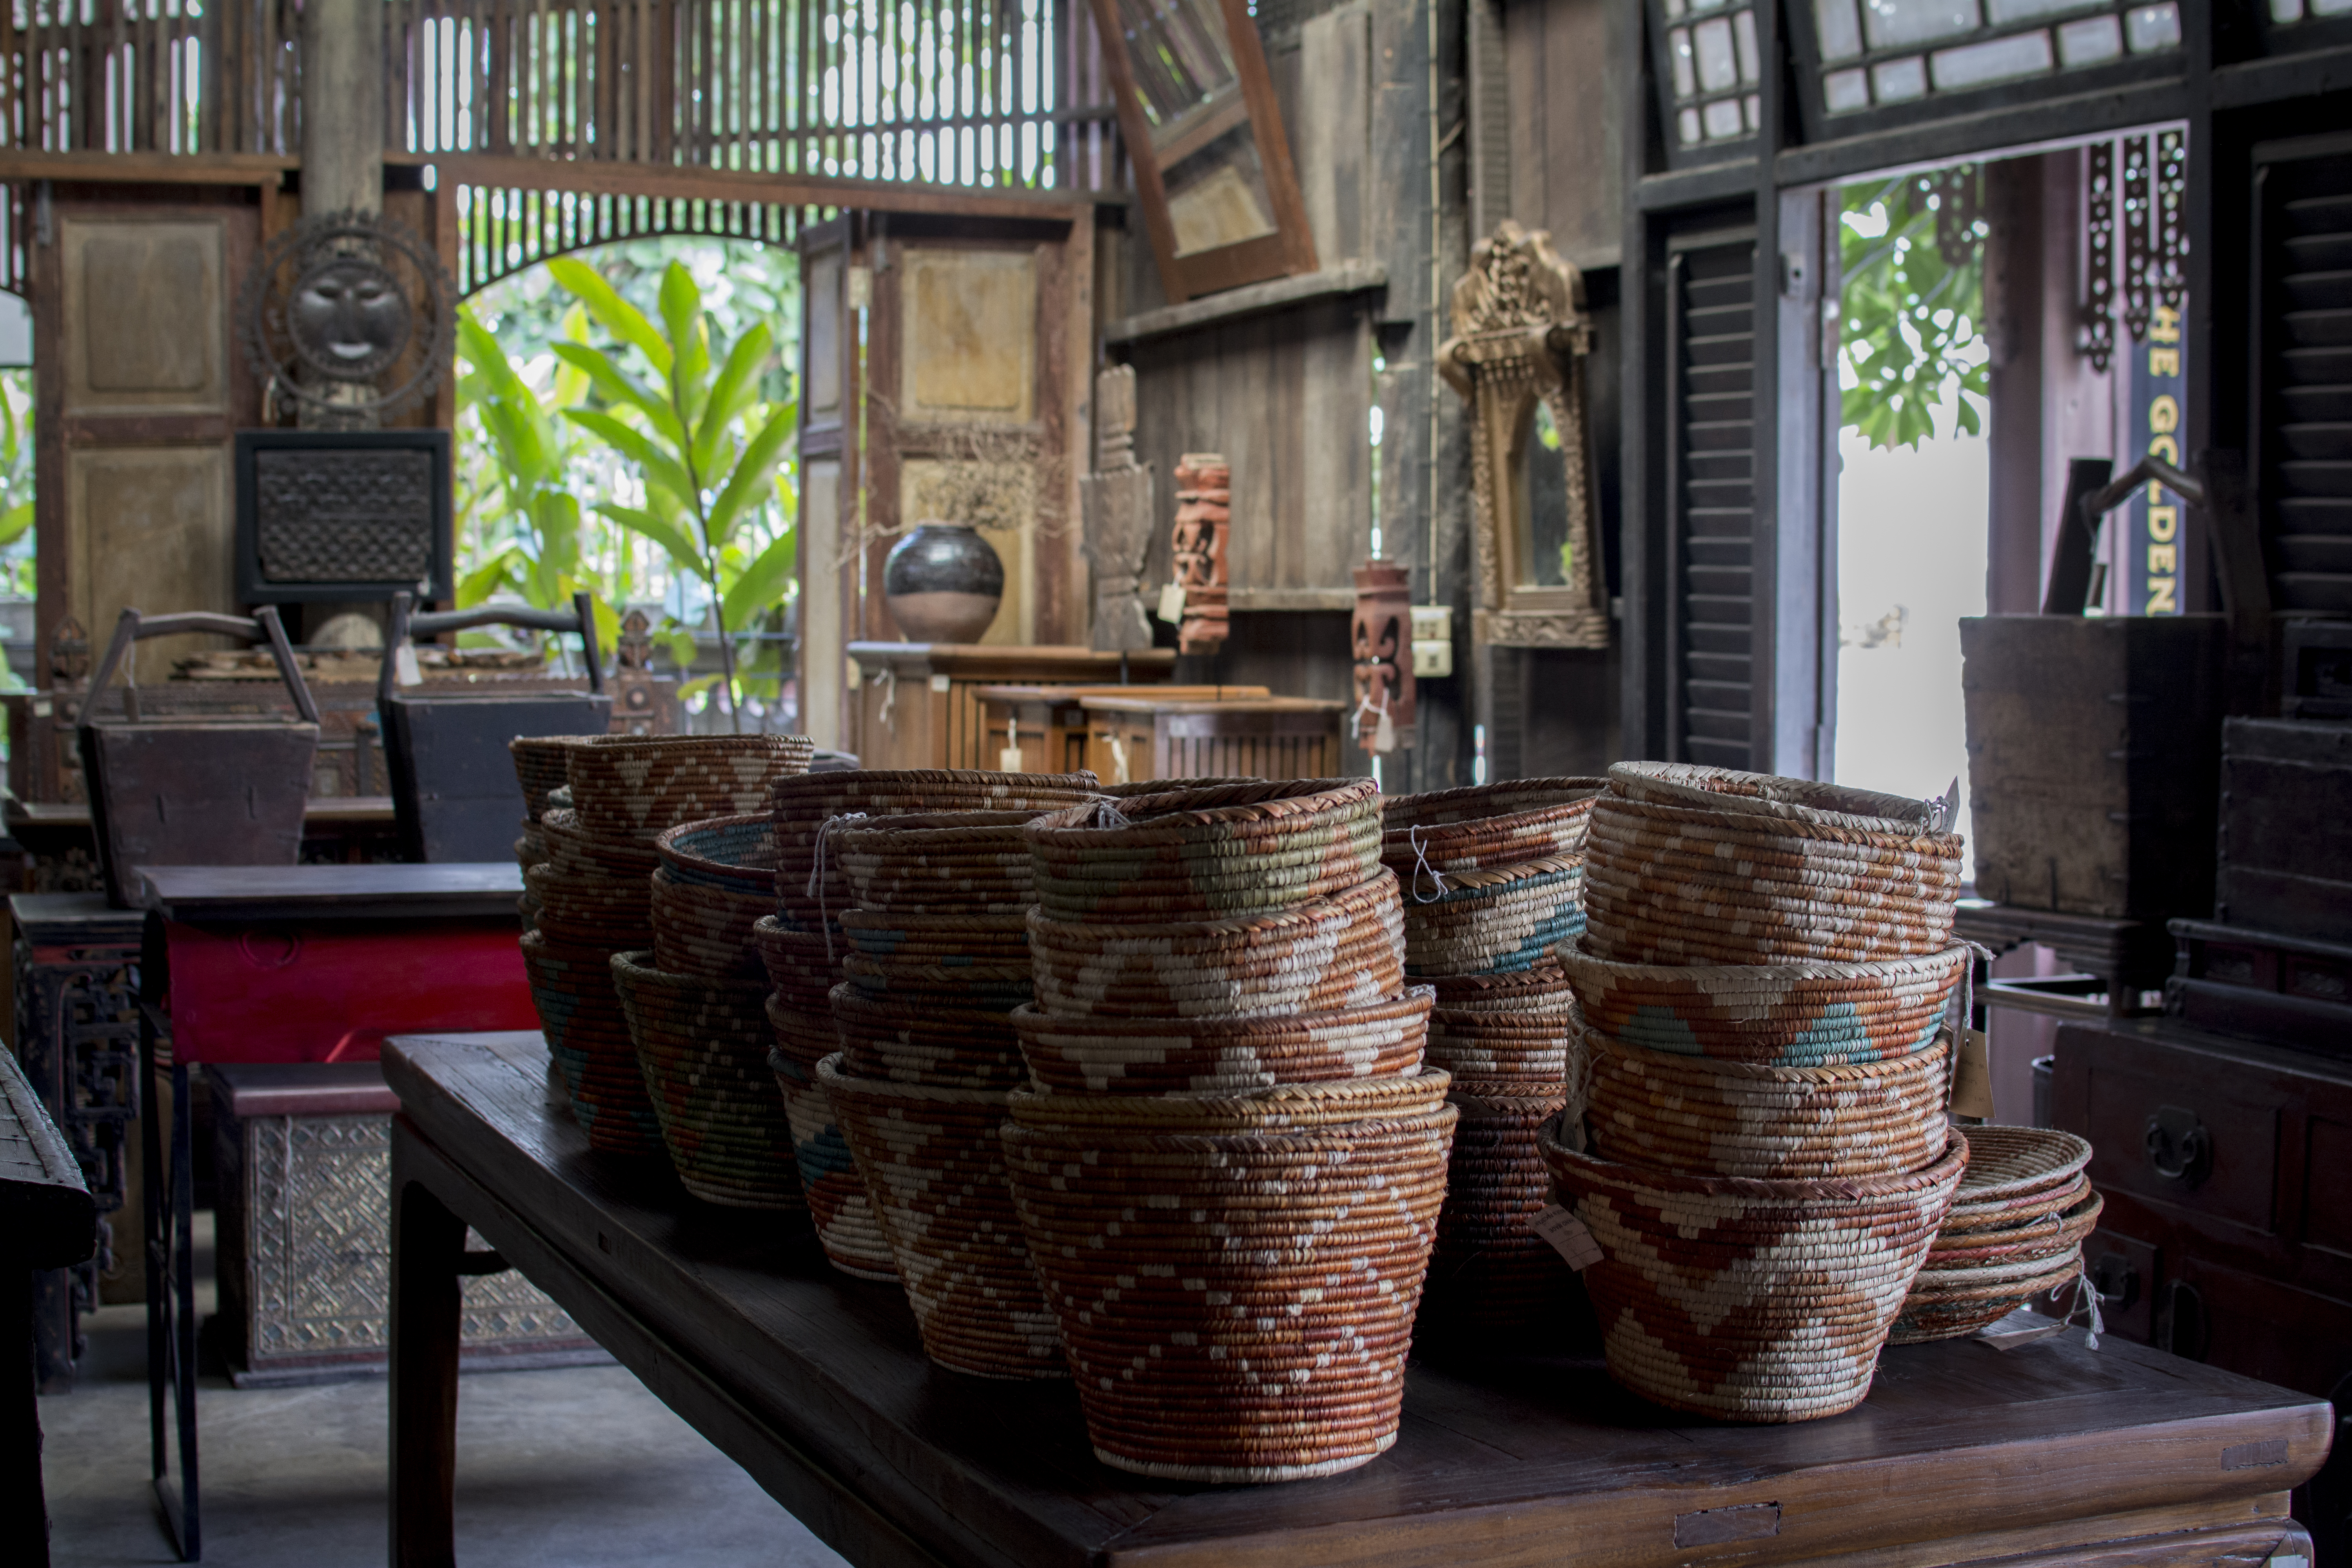 Handwoven Baskets on Antqiue Asian Furniture Antiques Diva Asia Buying Tours Thailand: Chiang Mai